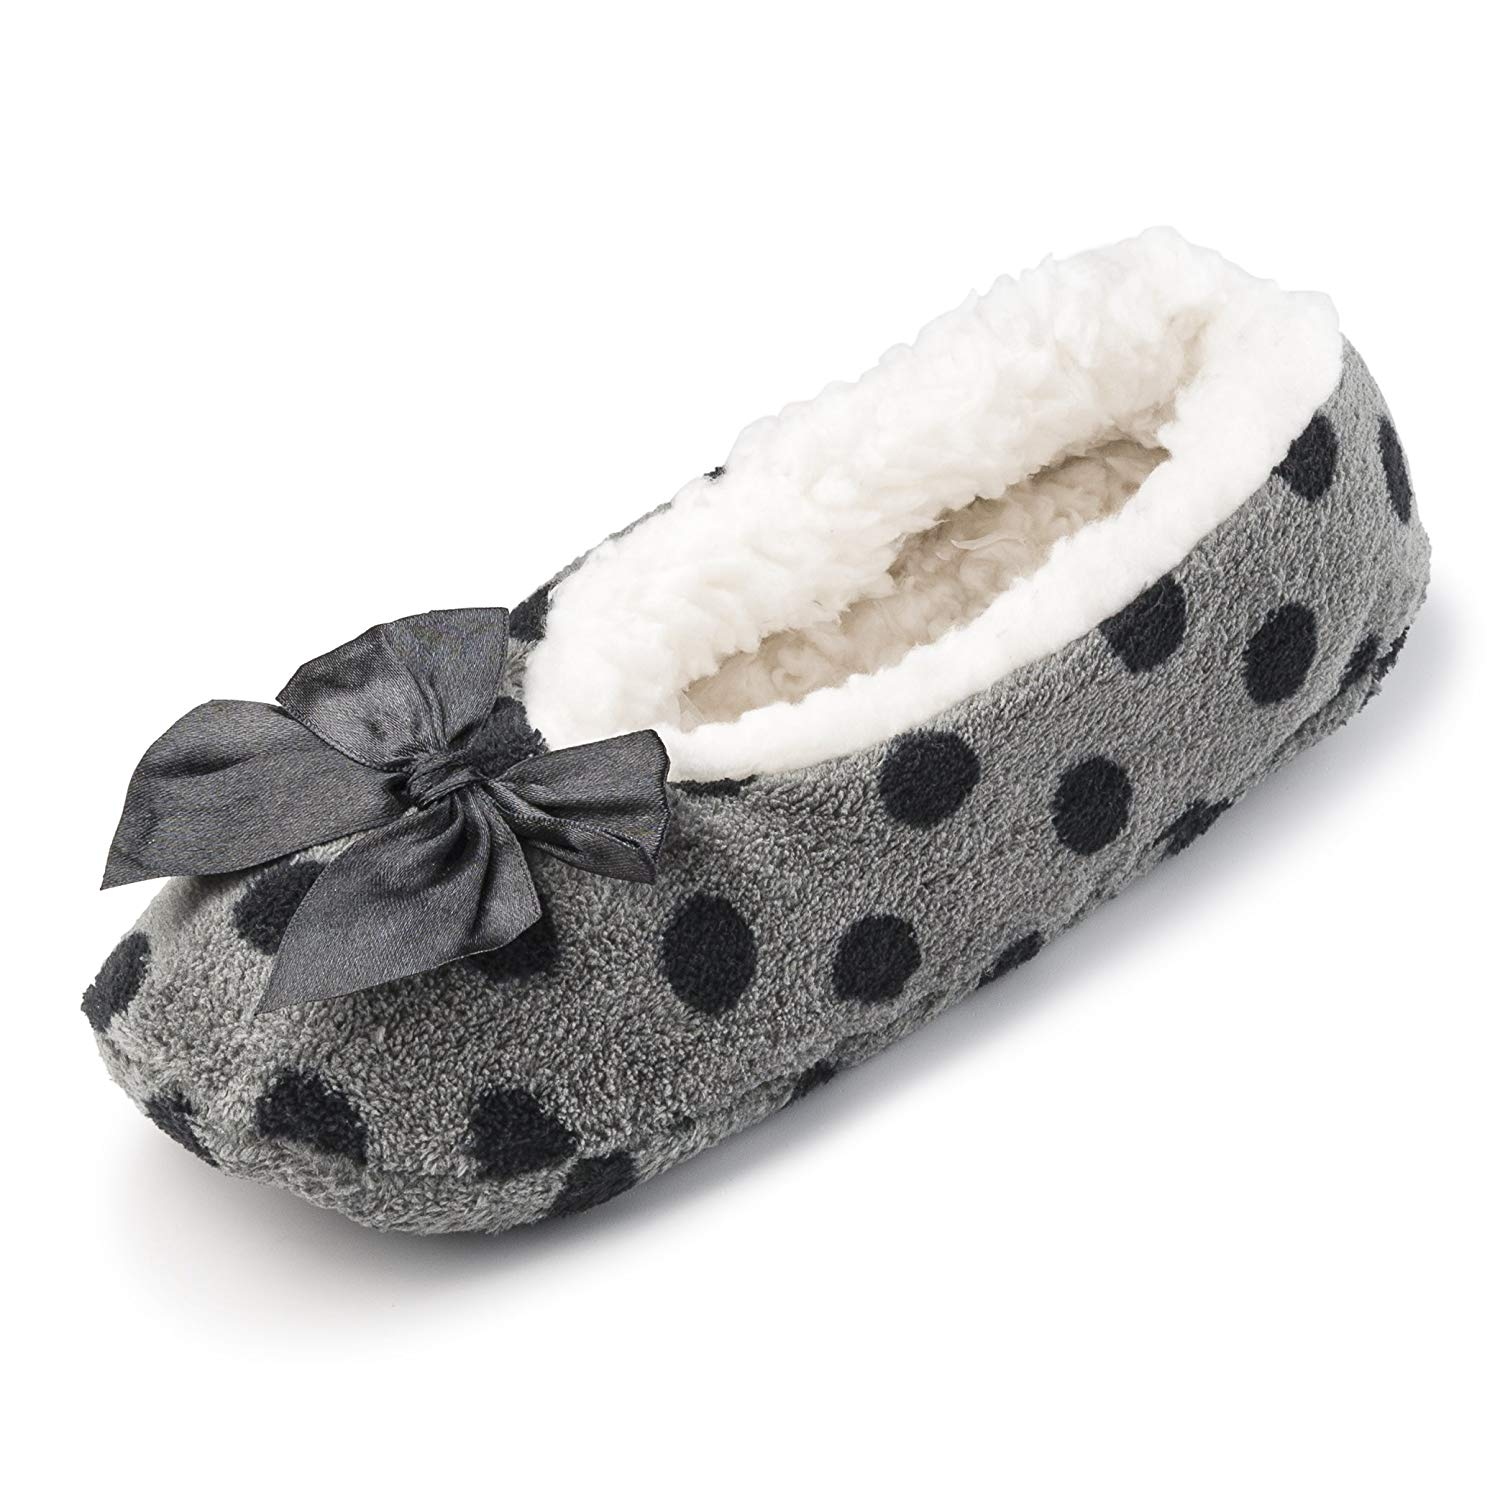 b3345297c17d Get Quotations · Fuzzy Fleece House Slippers for Women w/Sherpa Lining |  Comfortable Ballerina Indoor Shoes